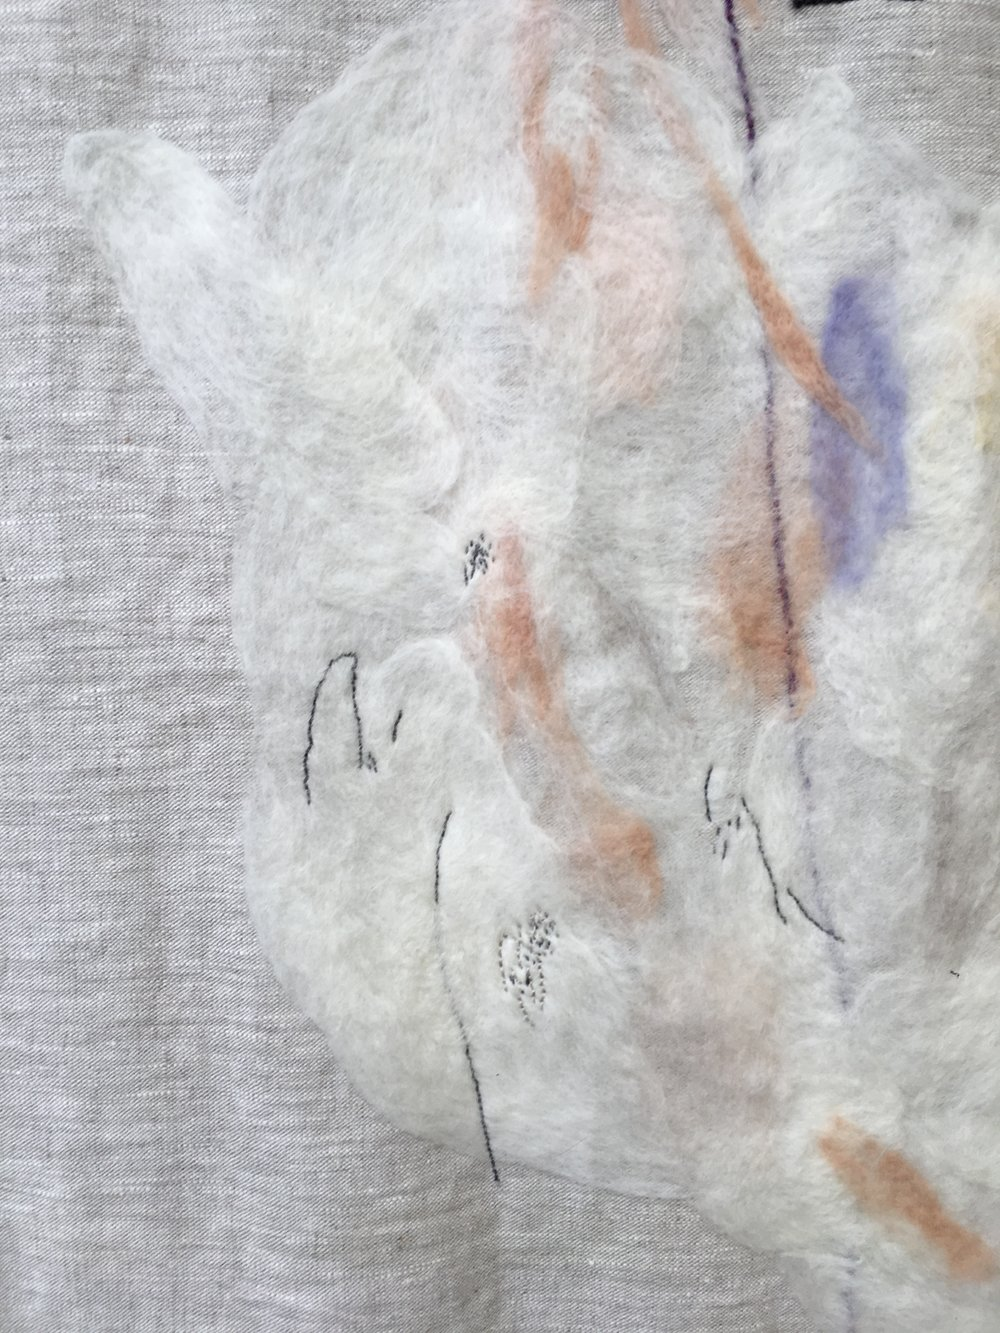 Lead me to the Holy Mountain  (detail), 2016. Embroidered and needle-felted wool on linen.